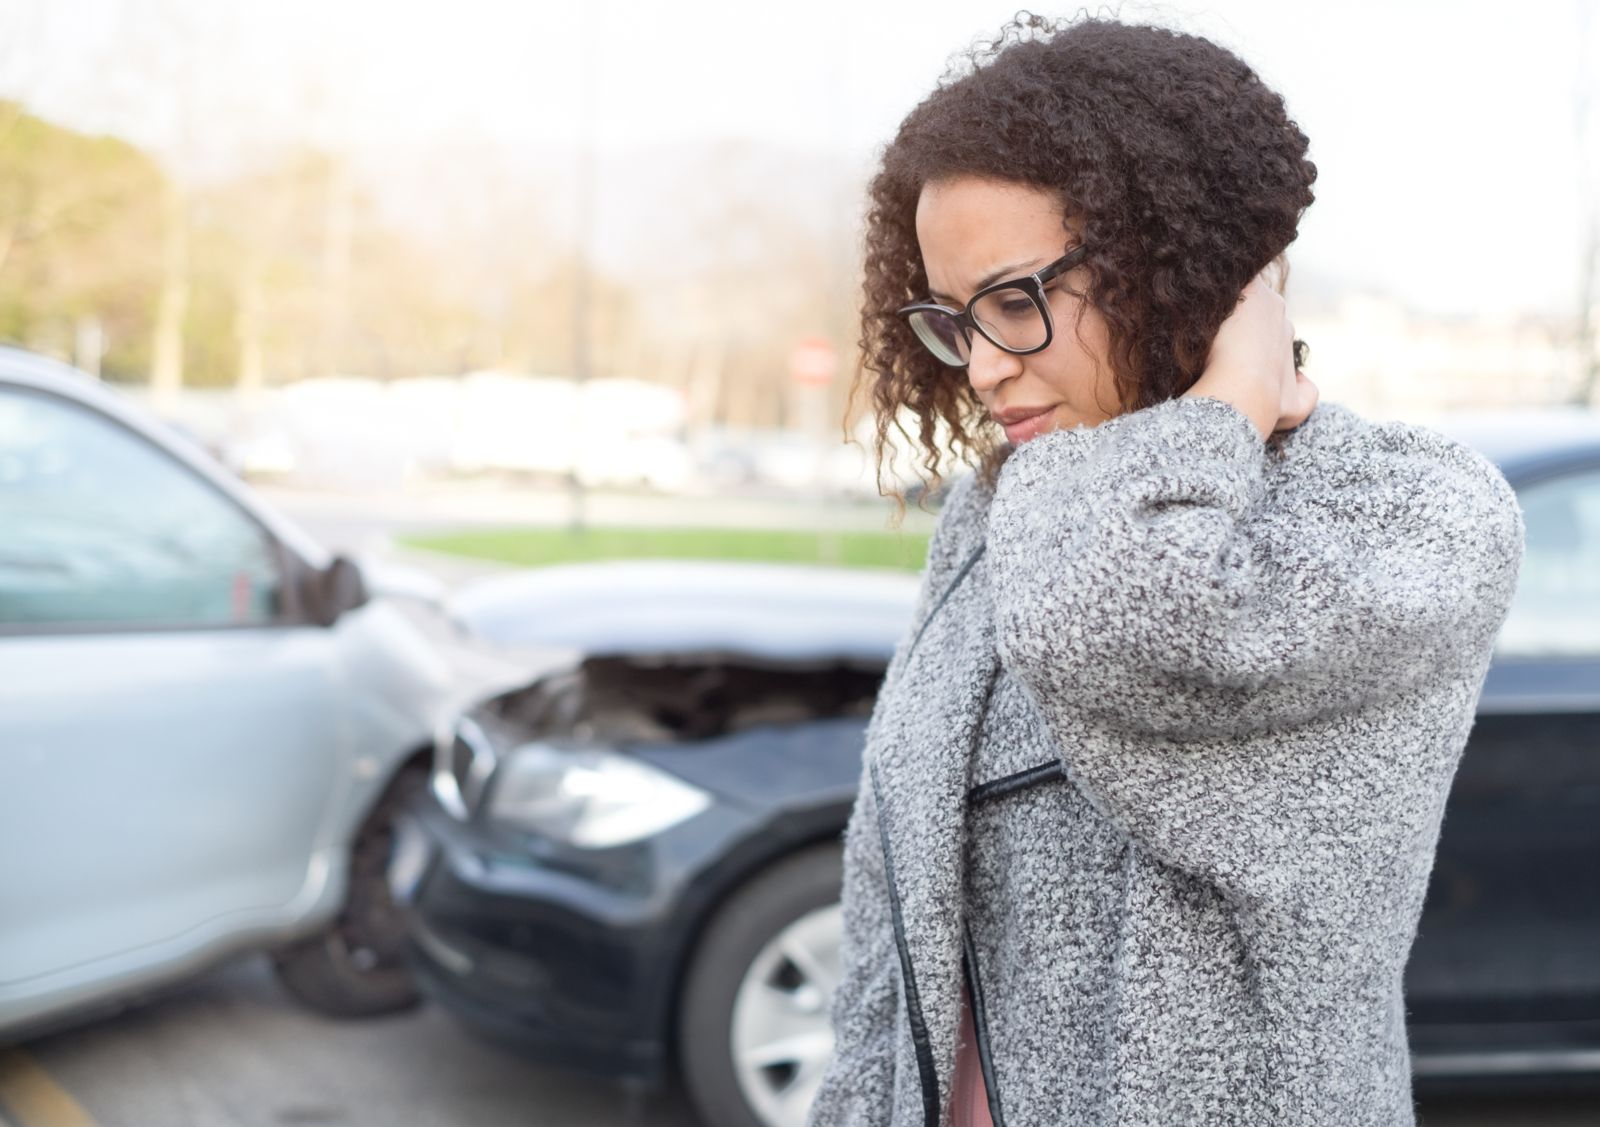 Woman Holding Neck Next to Cars After Accident